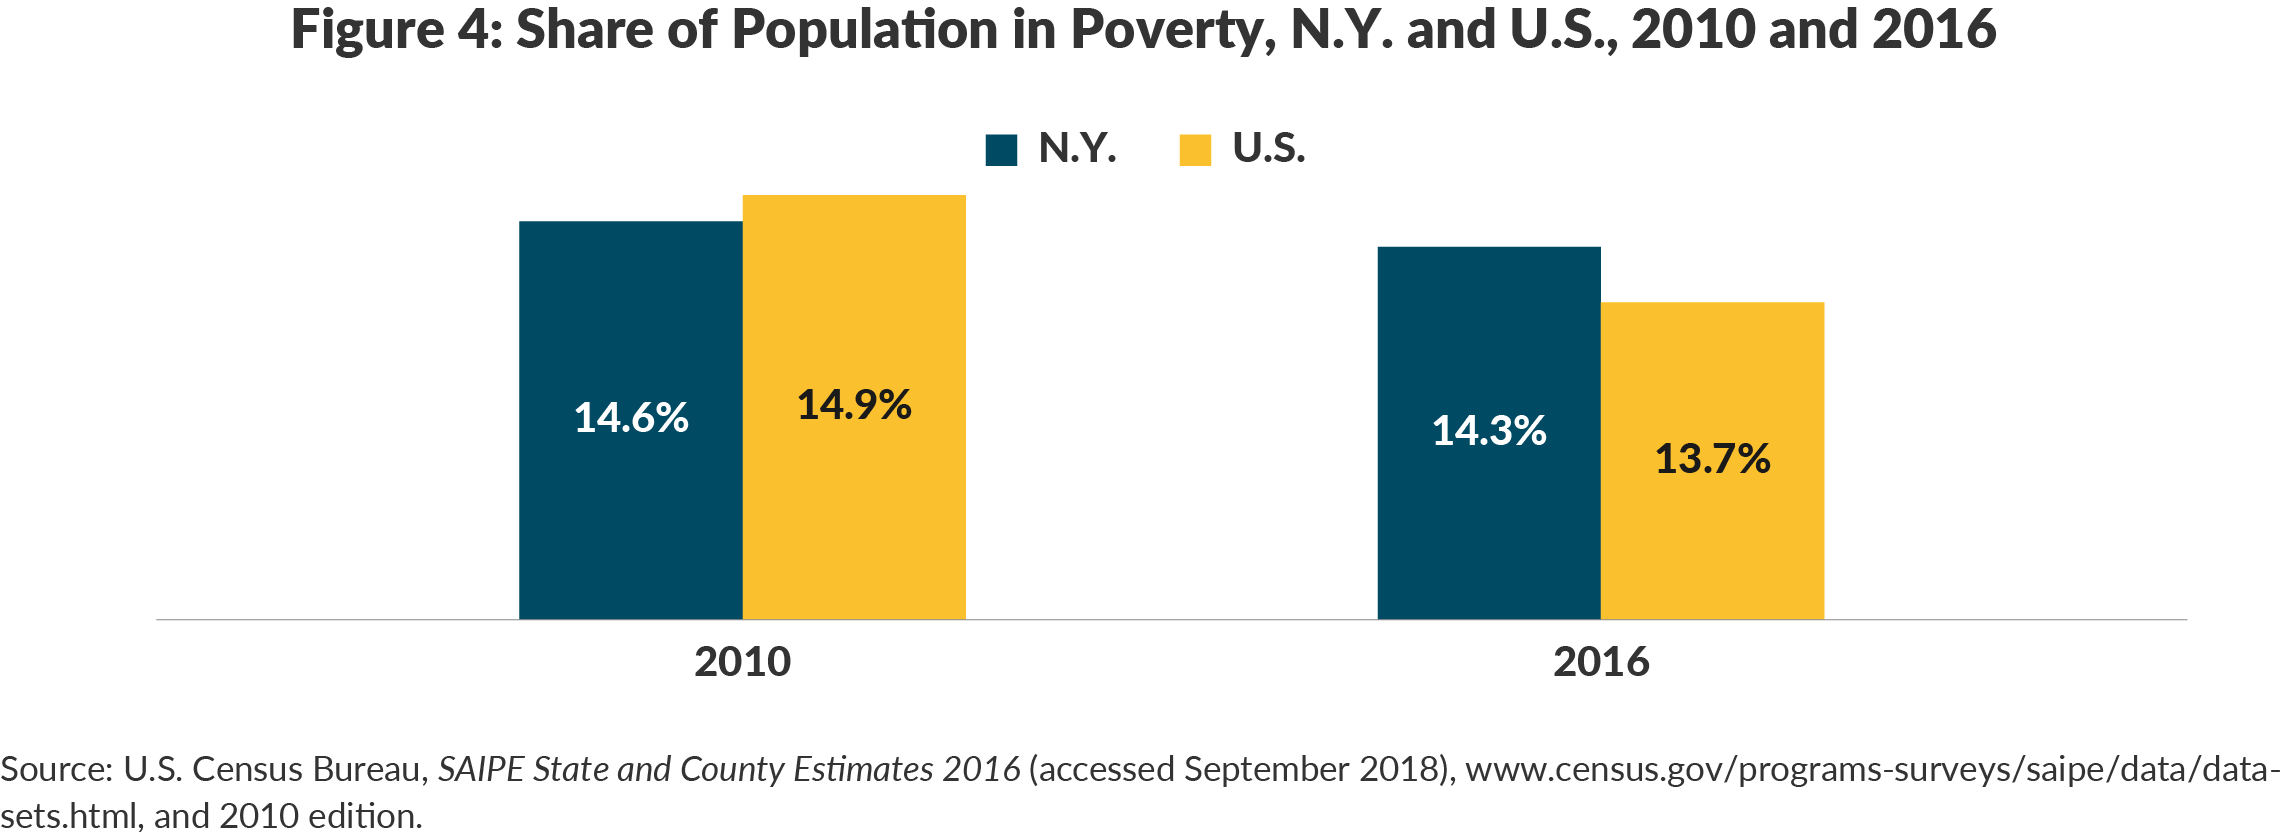 Figure 4: Share of Population in Poverty, N.Y. and U.S., 2010 and 2016